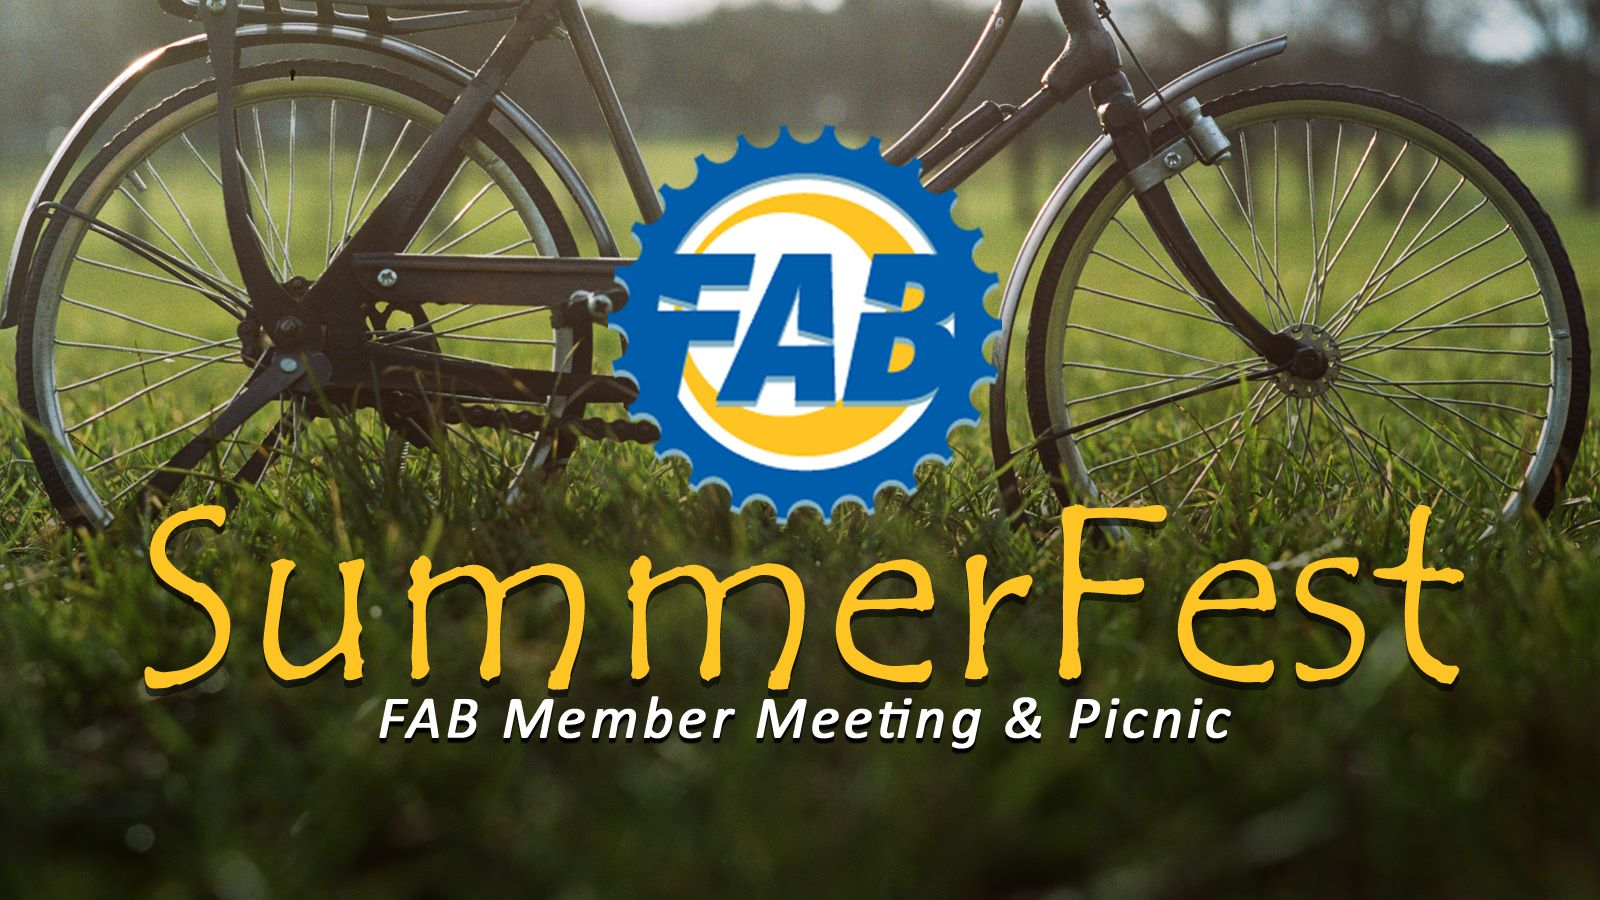 SummerFest Member Meeting